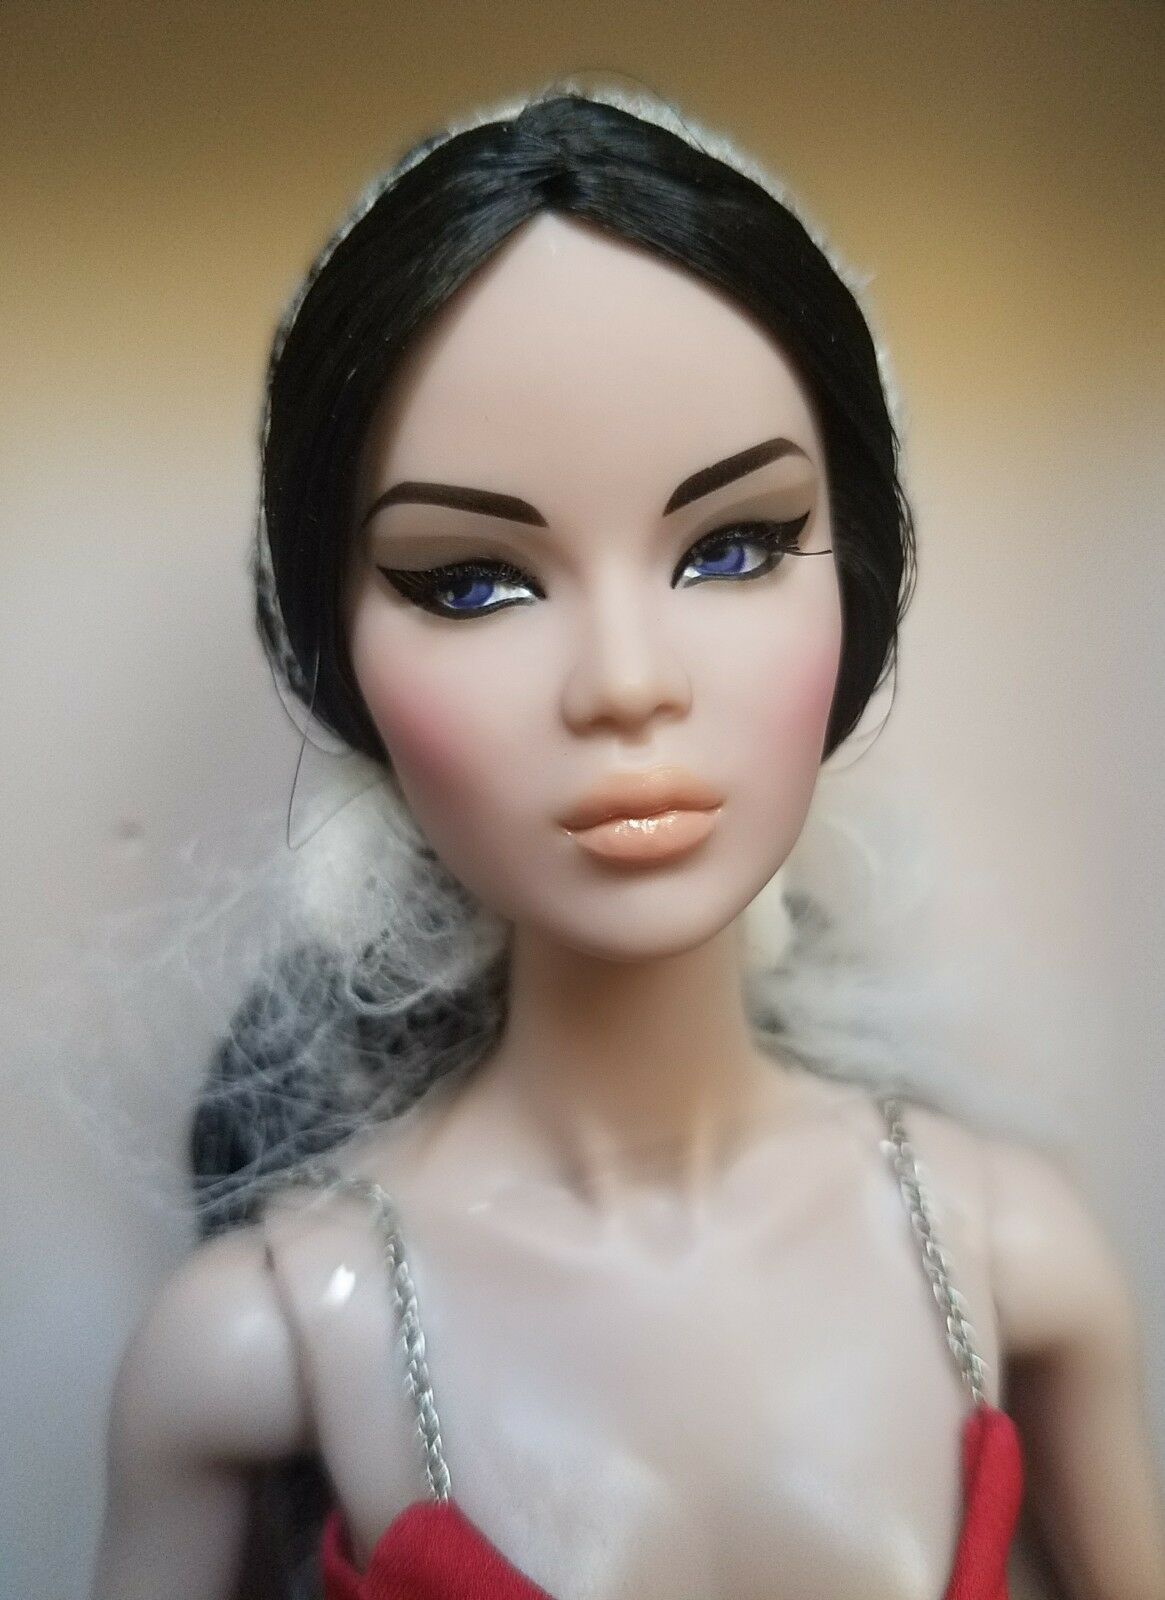 NRFB FIRST BlauSH AYUMI EXCLUSIVE CINEMATIC CONVENTION  12  doll Integrity